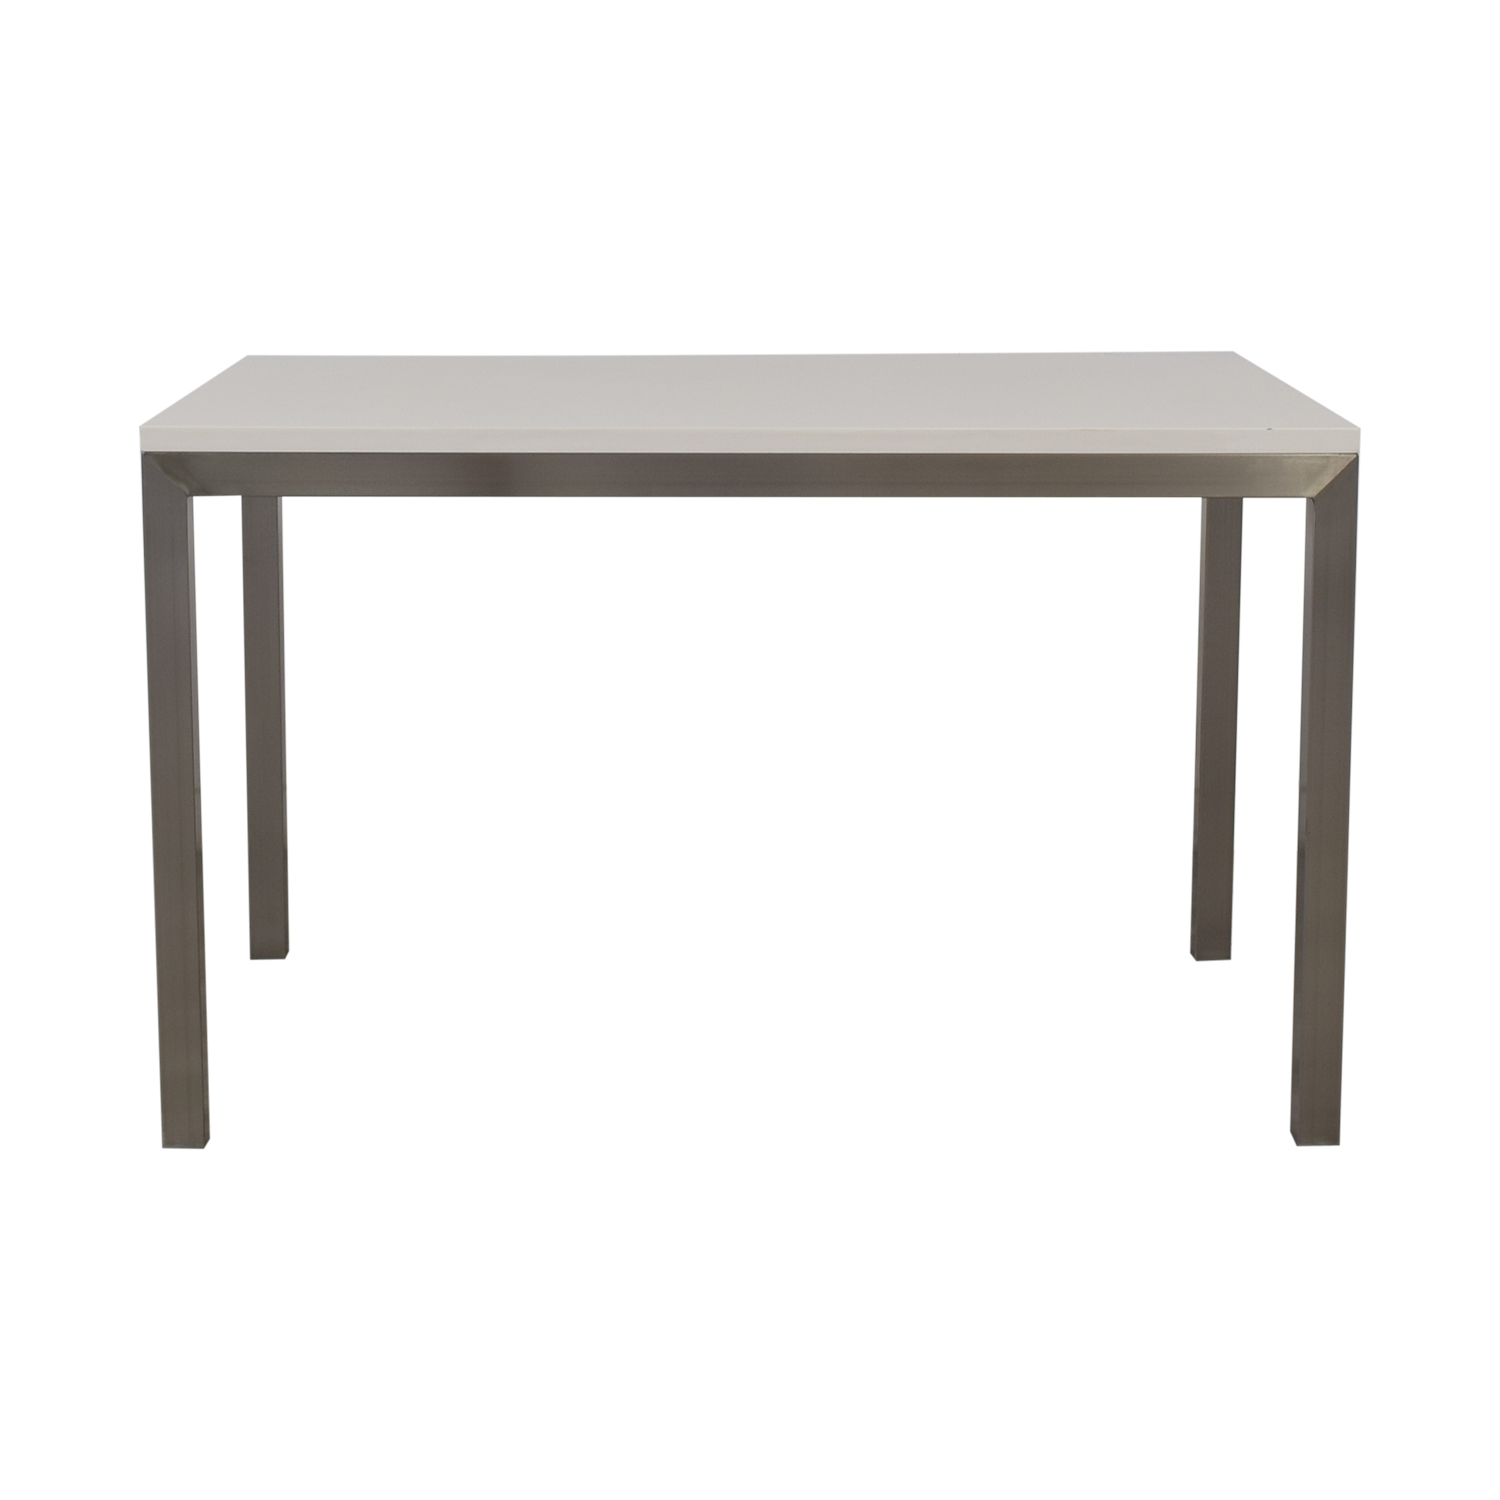 shop Crate & Barrel Parsons Dining Table Crate & Barrel